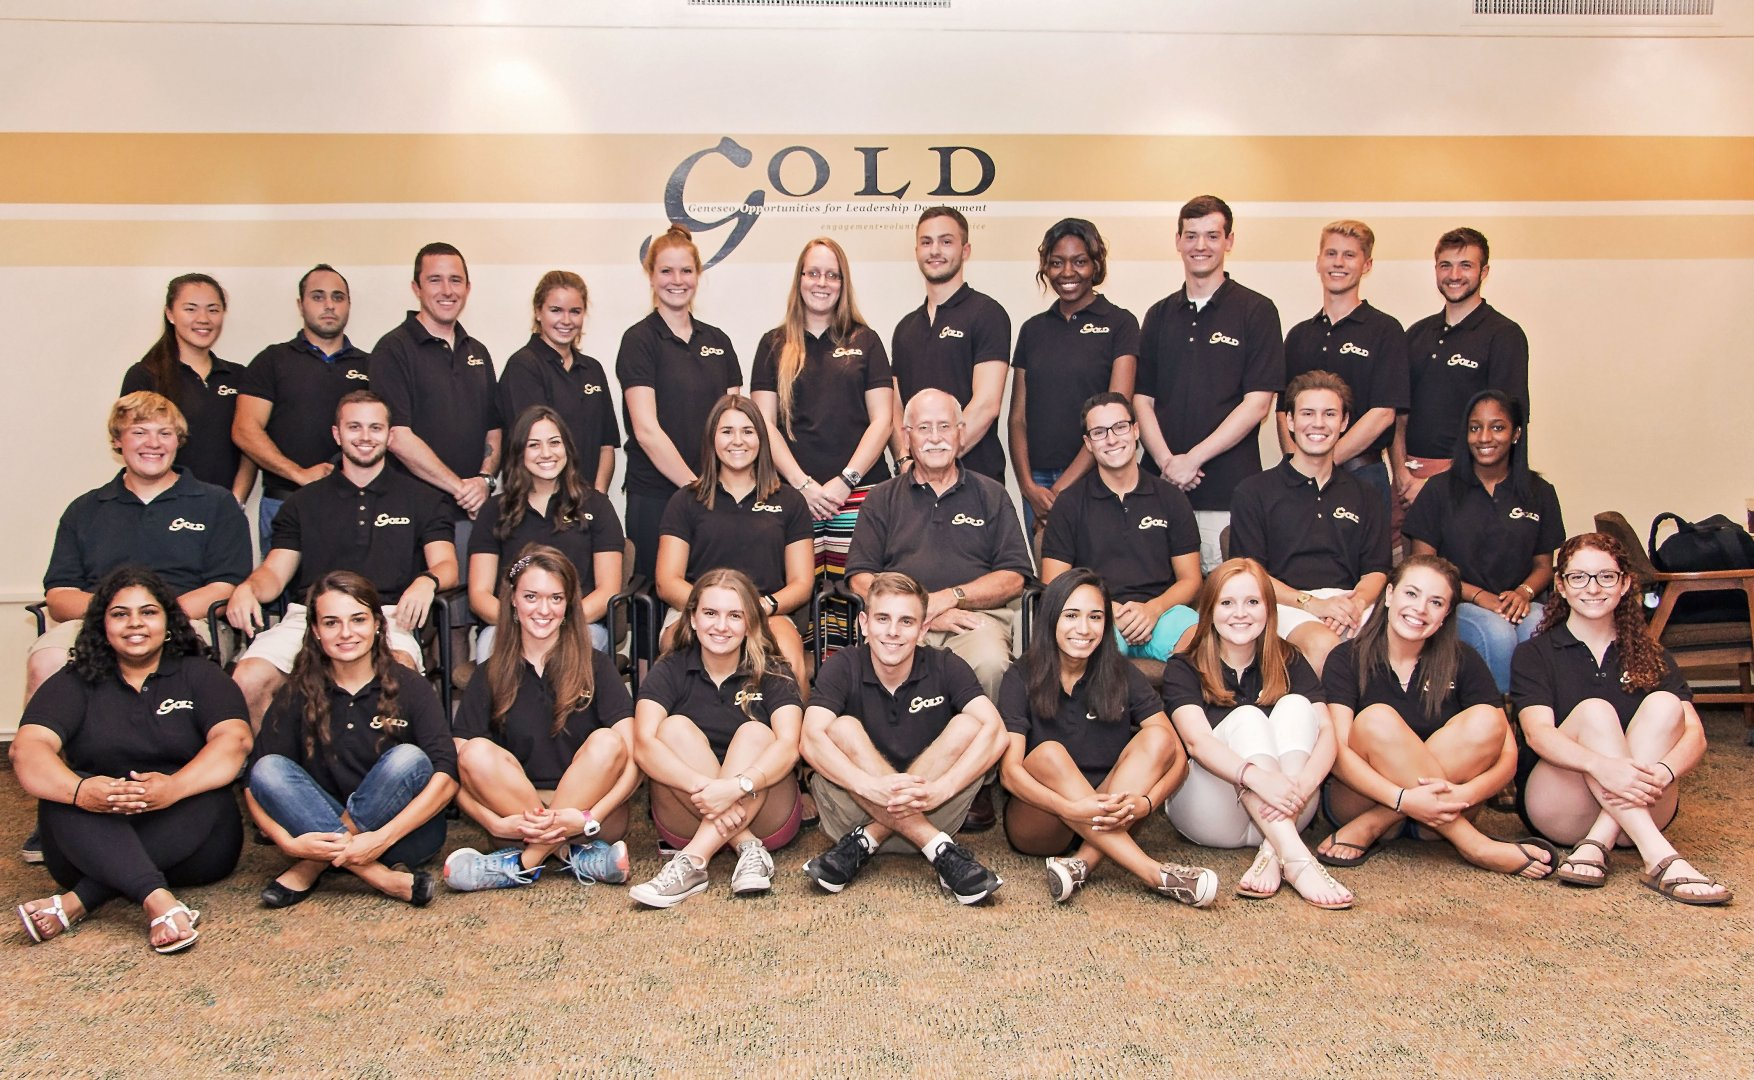 GOLD leadership members